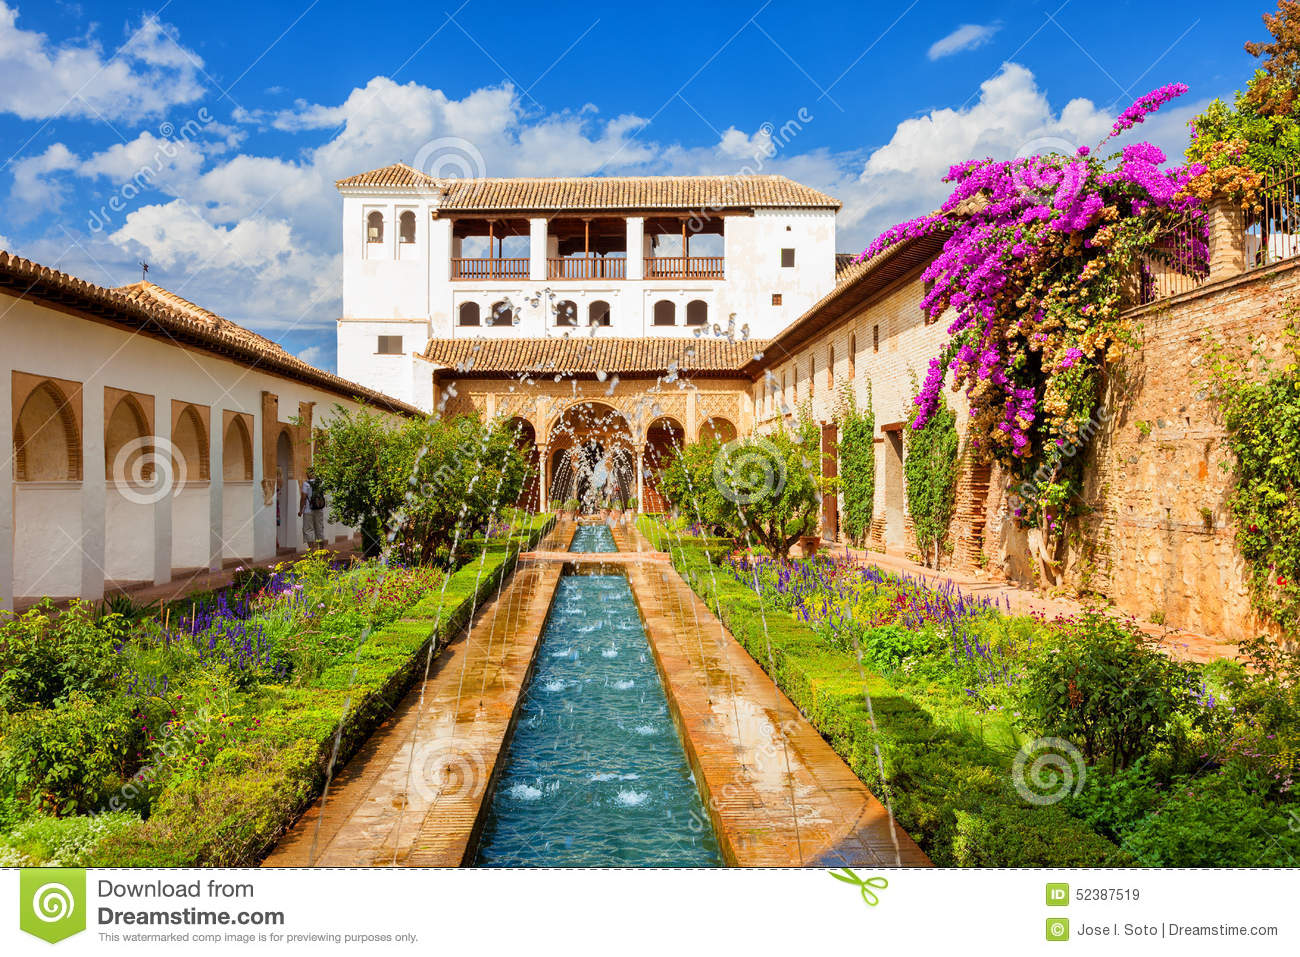 The Generalife Of The Alhambra De Granada, Spain Stock Photo - Image: 52387519